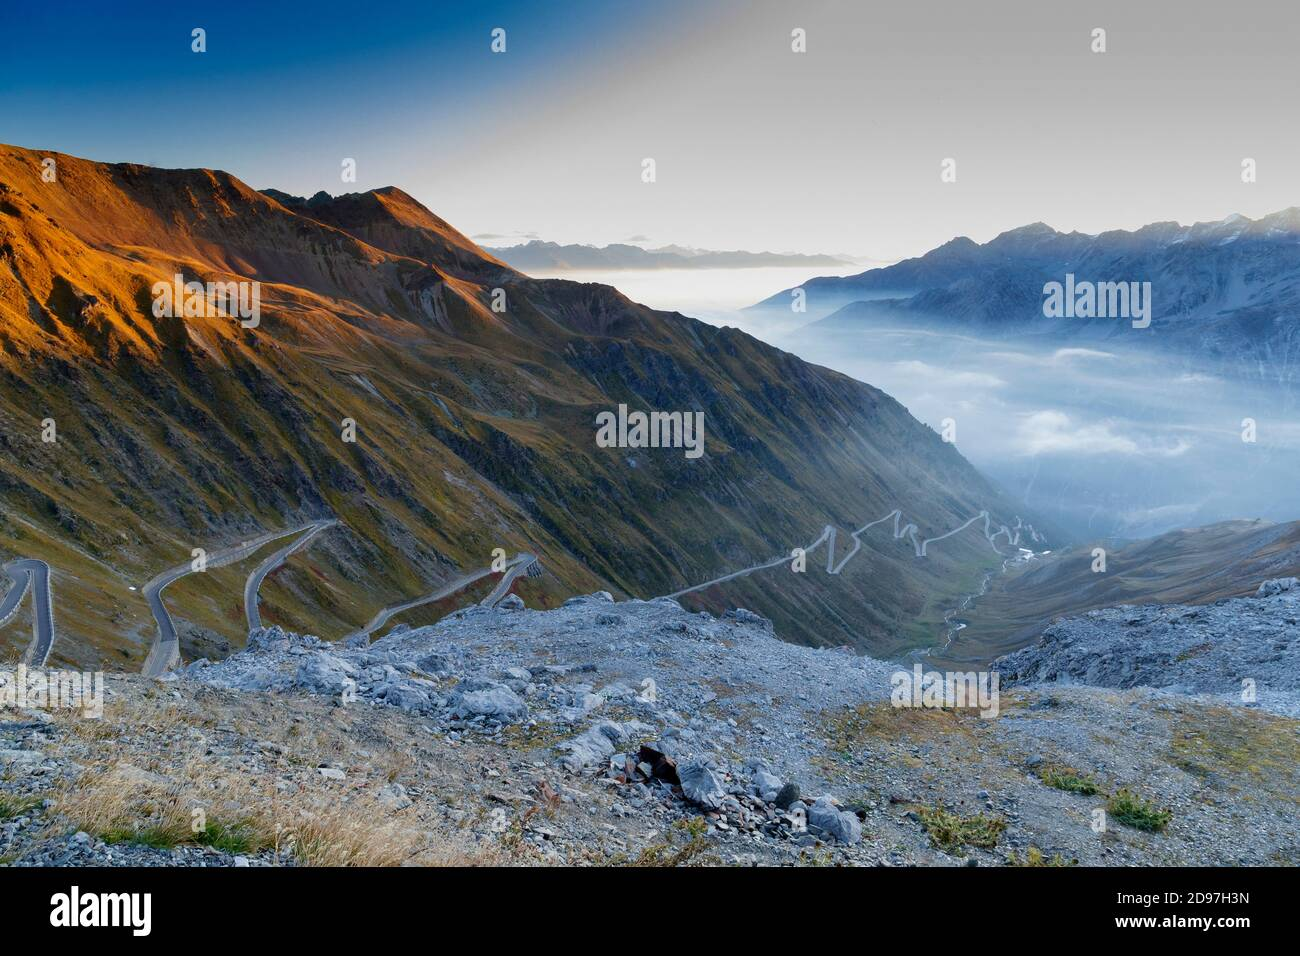 Stelvio Pass with mountains covered in snow and a winding road in the valley, Trentino-Alto Adige, Italy Stock Photo